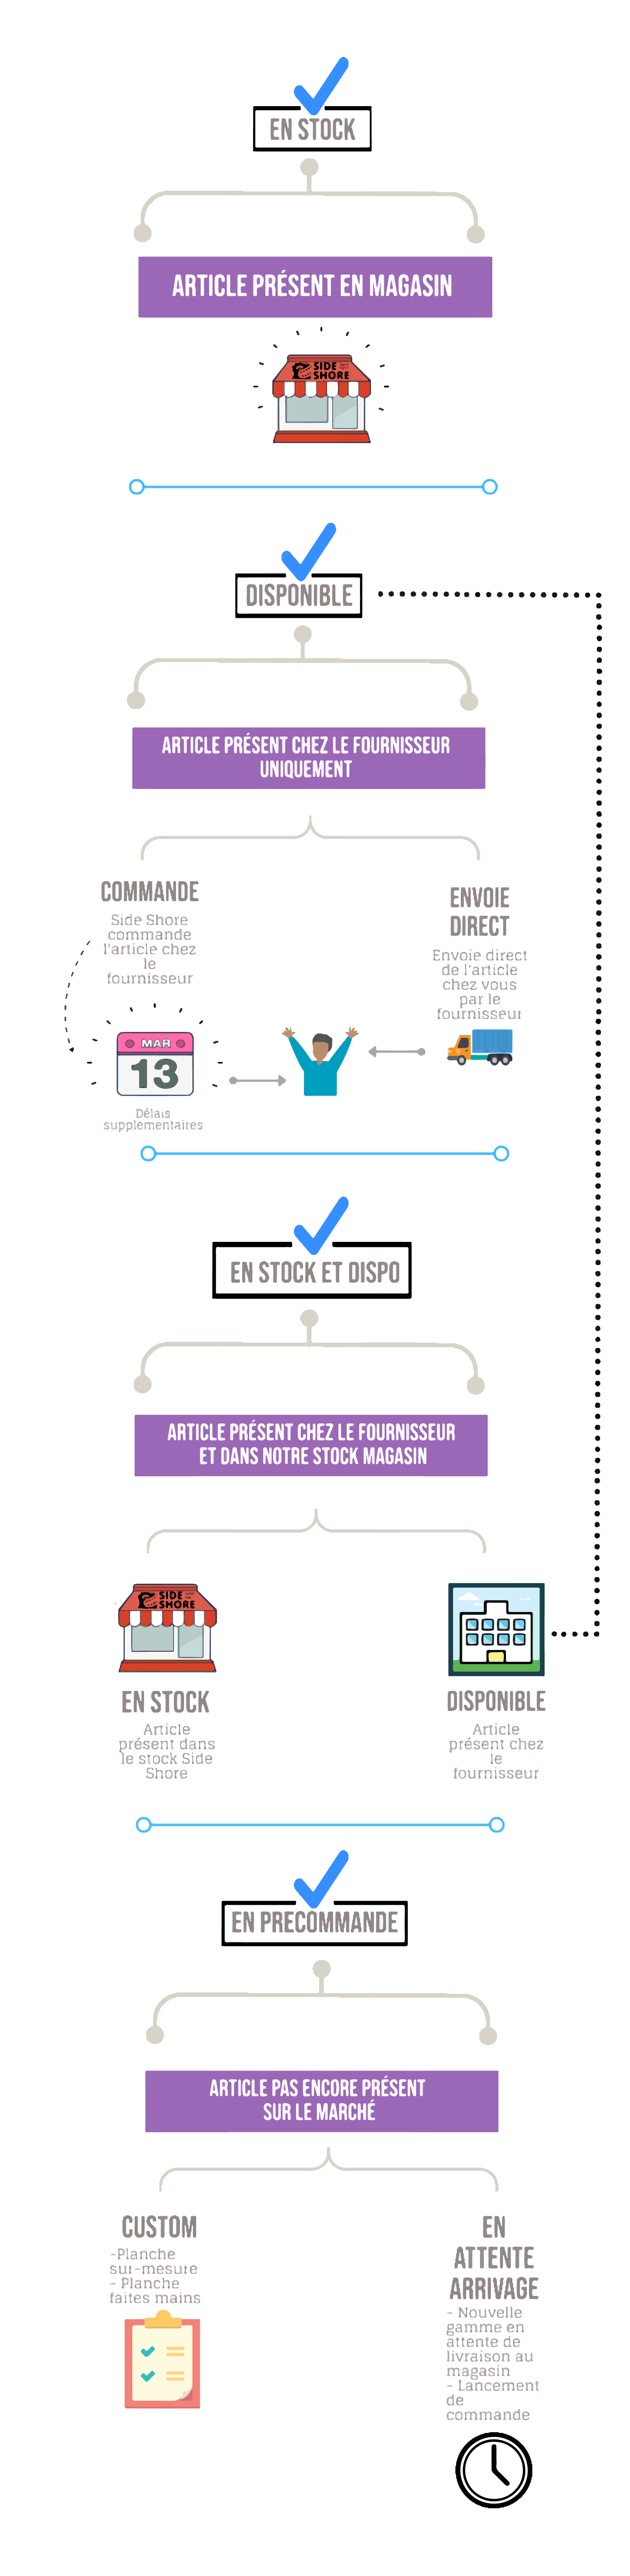 infographie side shore